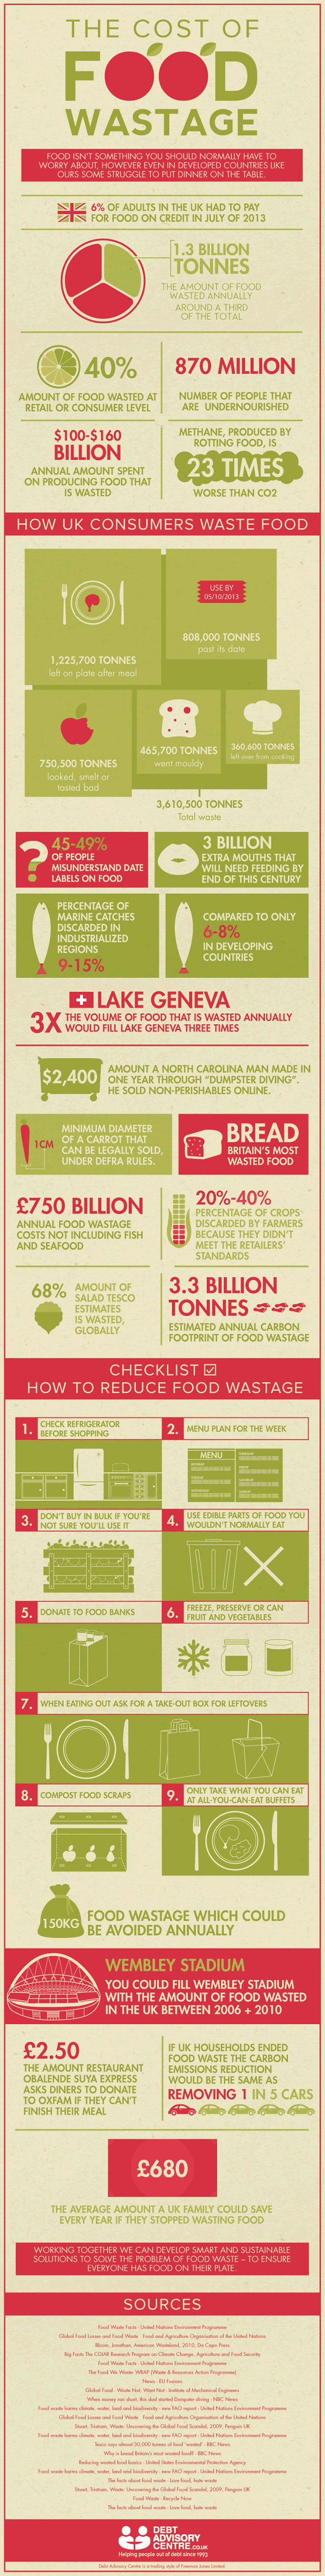 Cost of Food Waste Infographic - Debt Advisory Centre